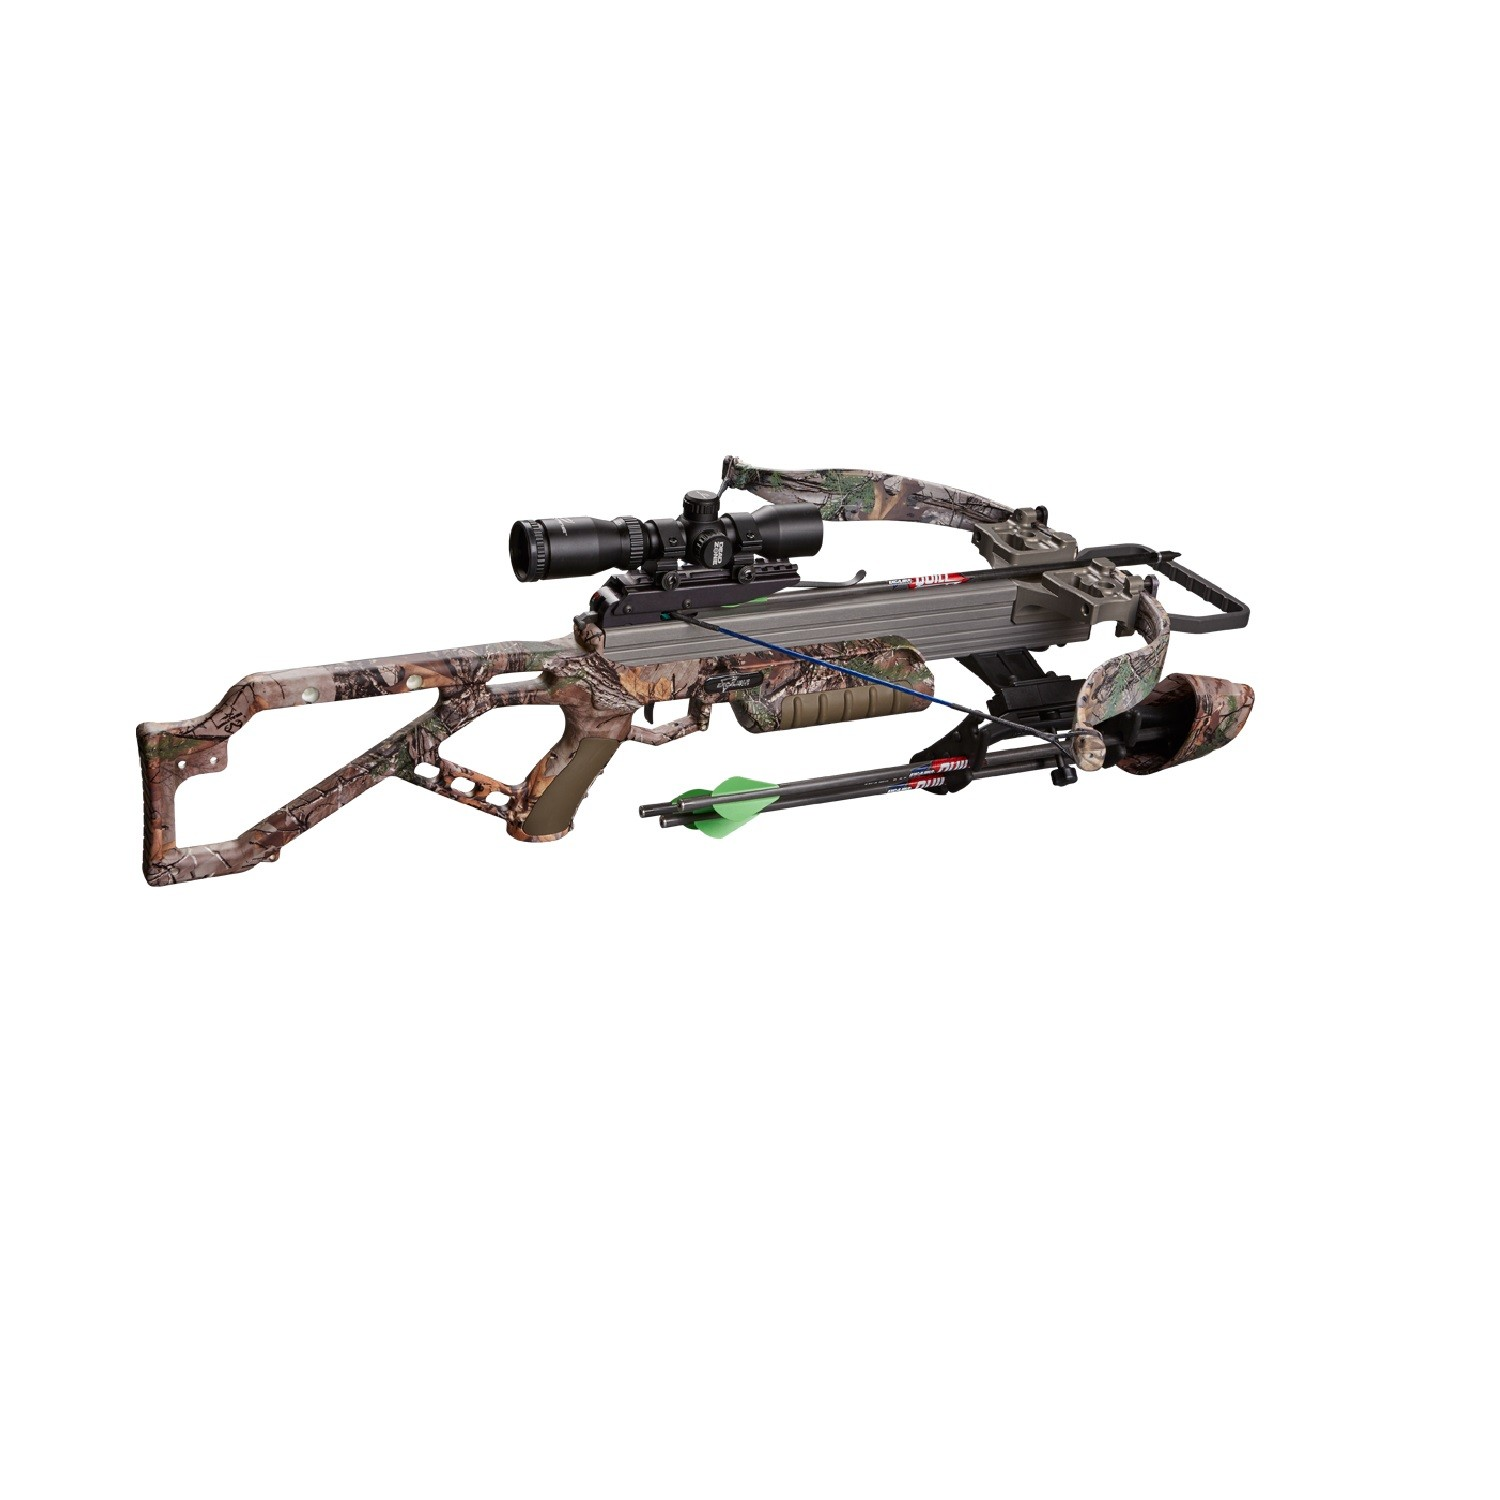 EXCALIBUR MATRIX MICRO315 CAMO CROSSBOW PACKAGE